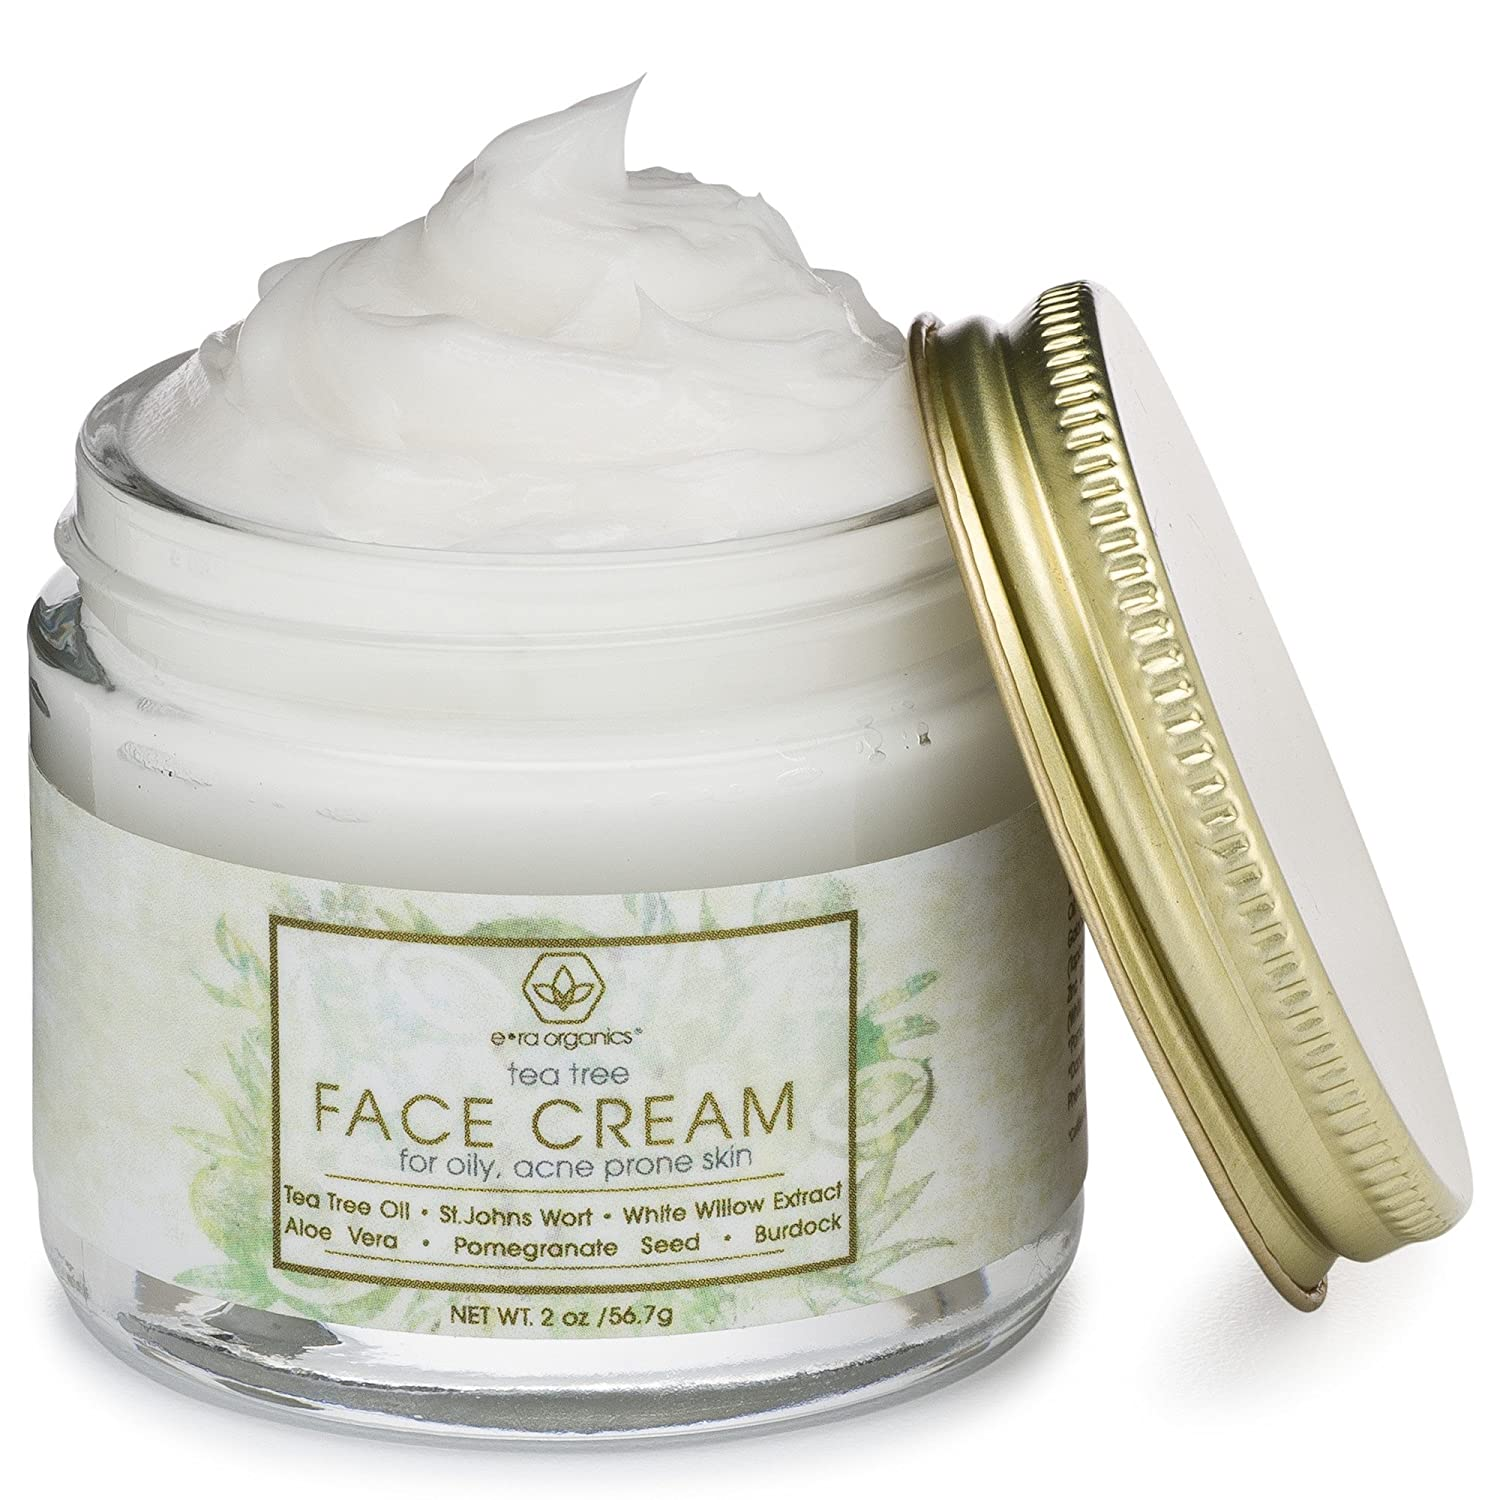 Tea Tree Oil Face Cream – For Oily, Acne Prone Skin Natural Organic Facial Moisturizer with 7X Ingredients For Rosacea, Cystic Acne, Blackheads Redness 2.0oz 56.6g